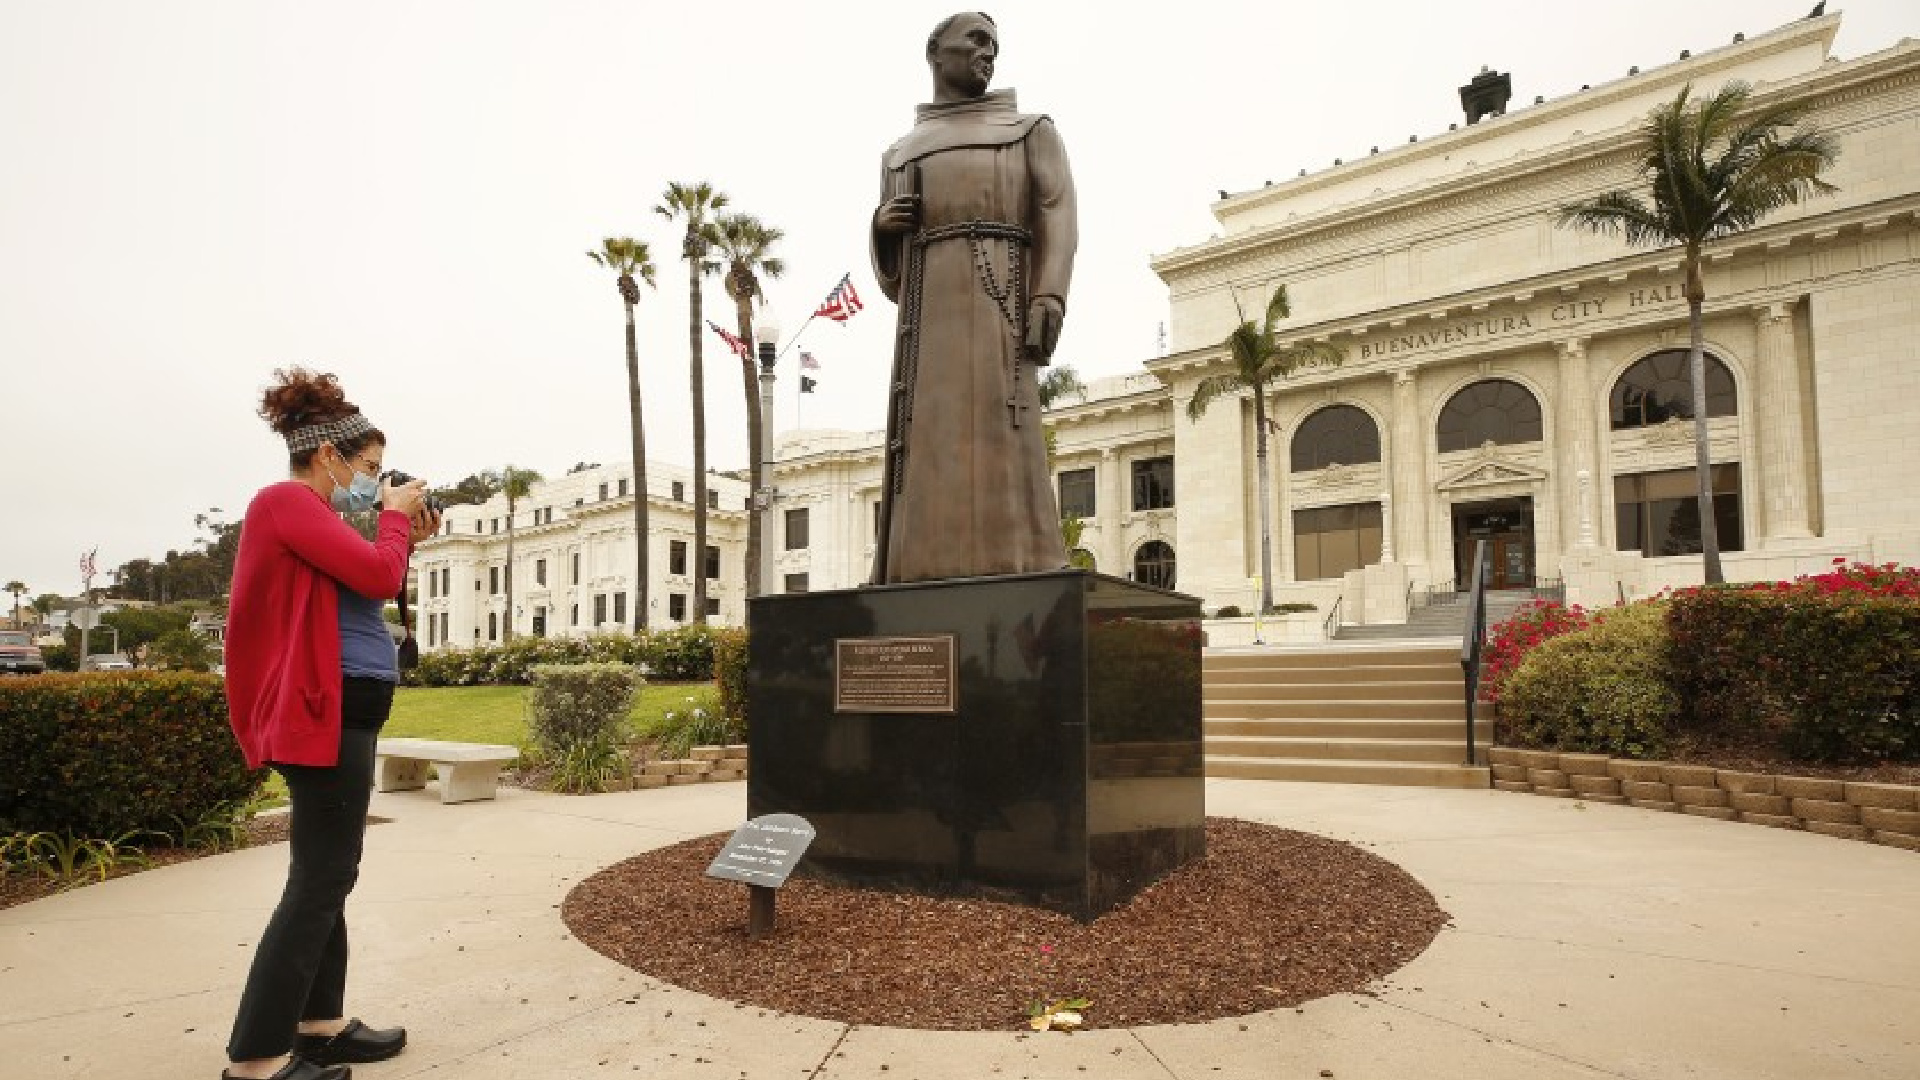 This statue of Father Junípero Serra in front of Ventura City Hall and other Serra statues will be removed.(Al Seib / Los Angeles Times)